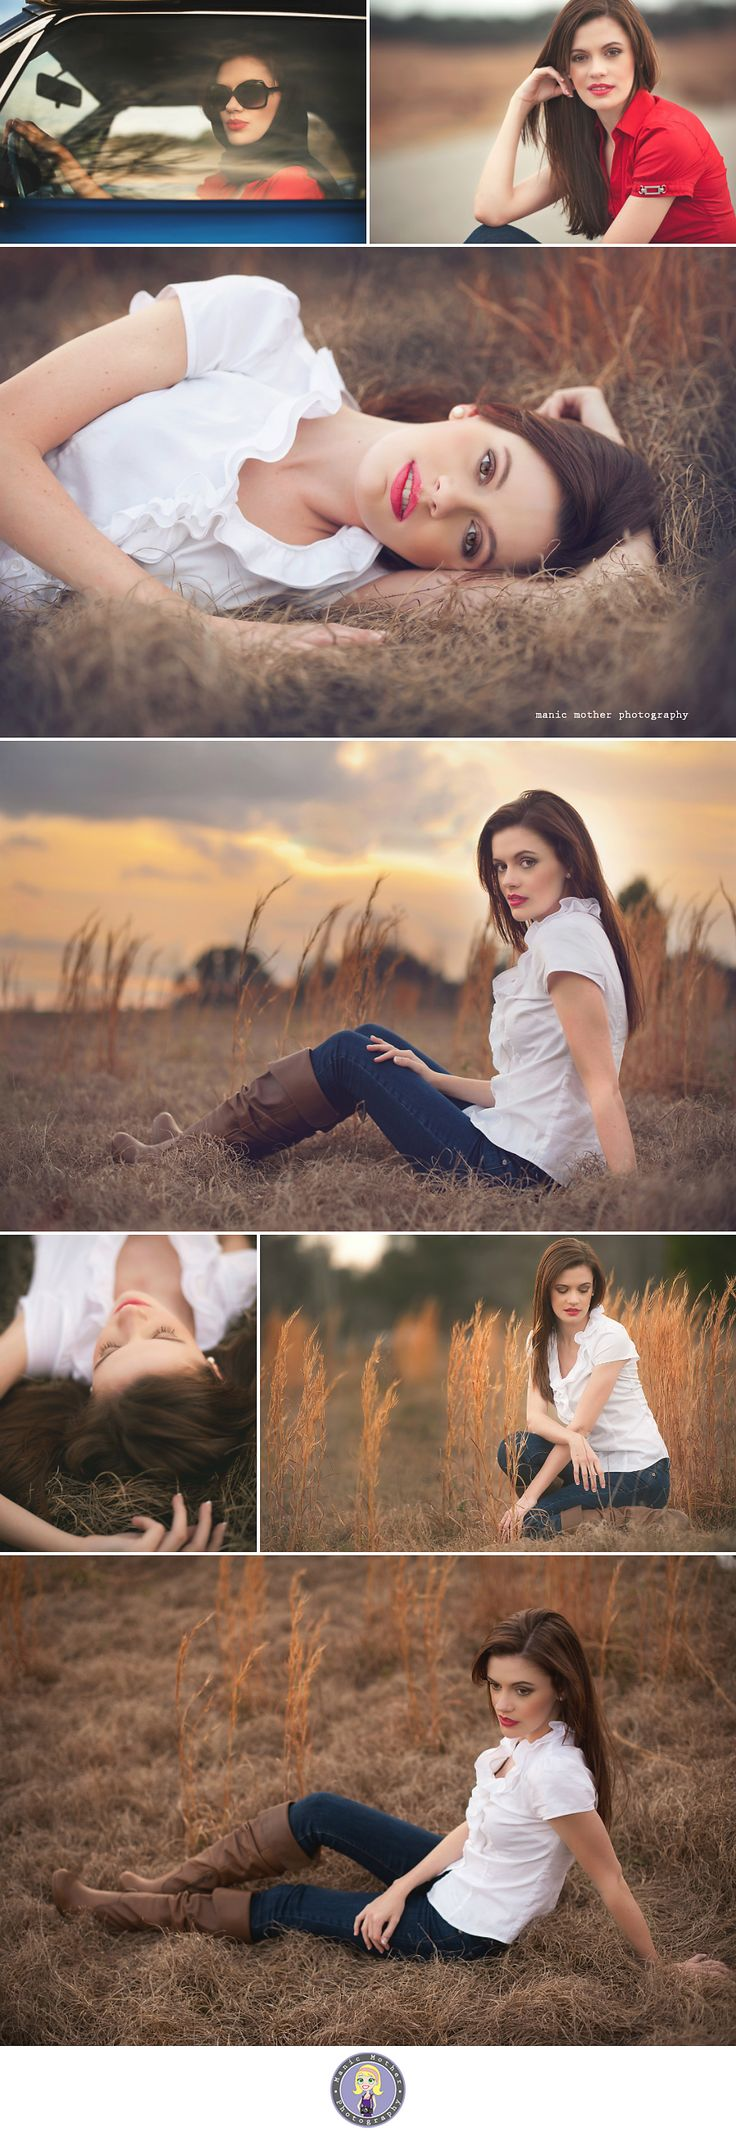 Great poses and beautiful photography .Welker Photography of Boise Idaho is always looking for good ways to pose our clients.  This is a great pose we may have to add to our recommended poses.